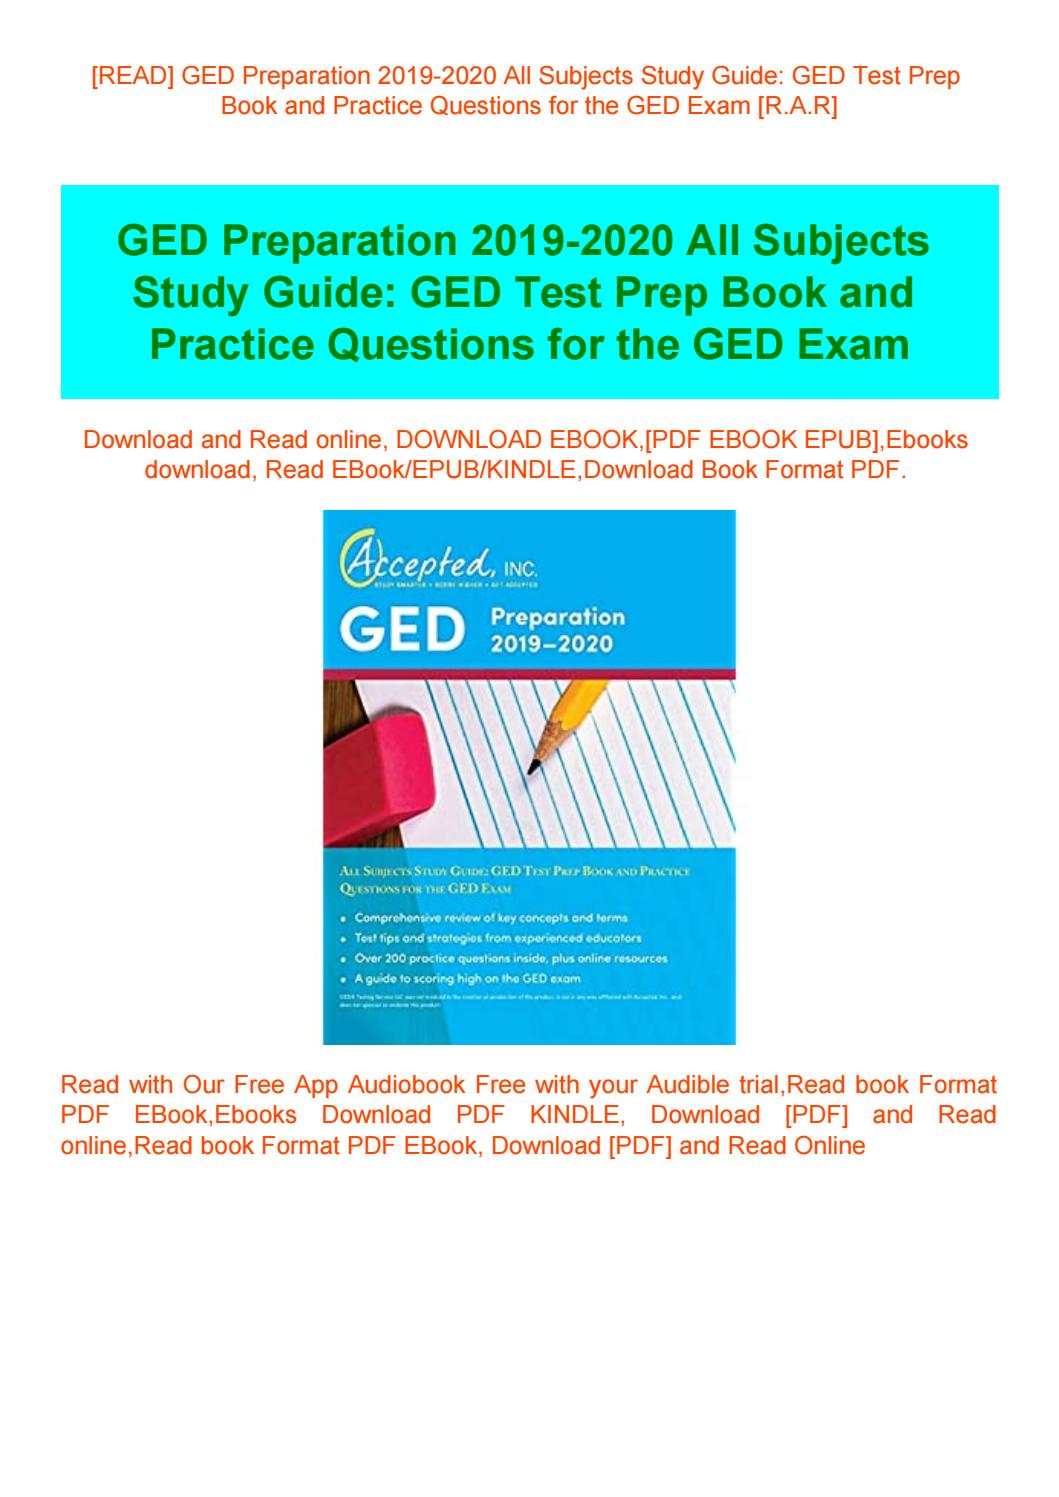 Read] Ged Preparation 2019-2020 All Subjects Study Guide Ged